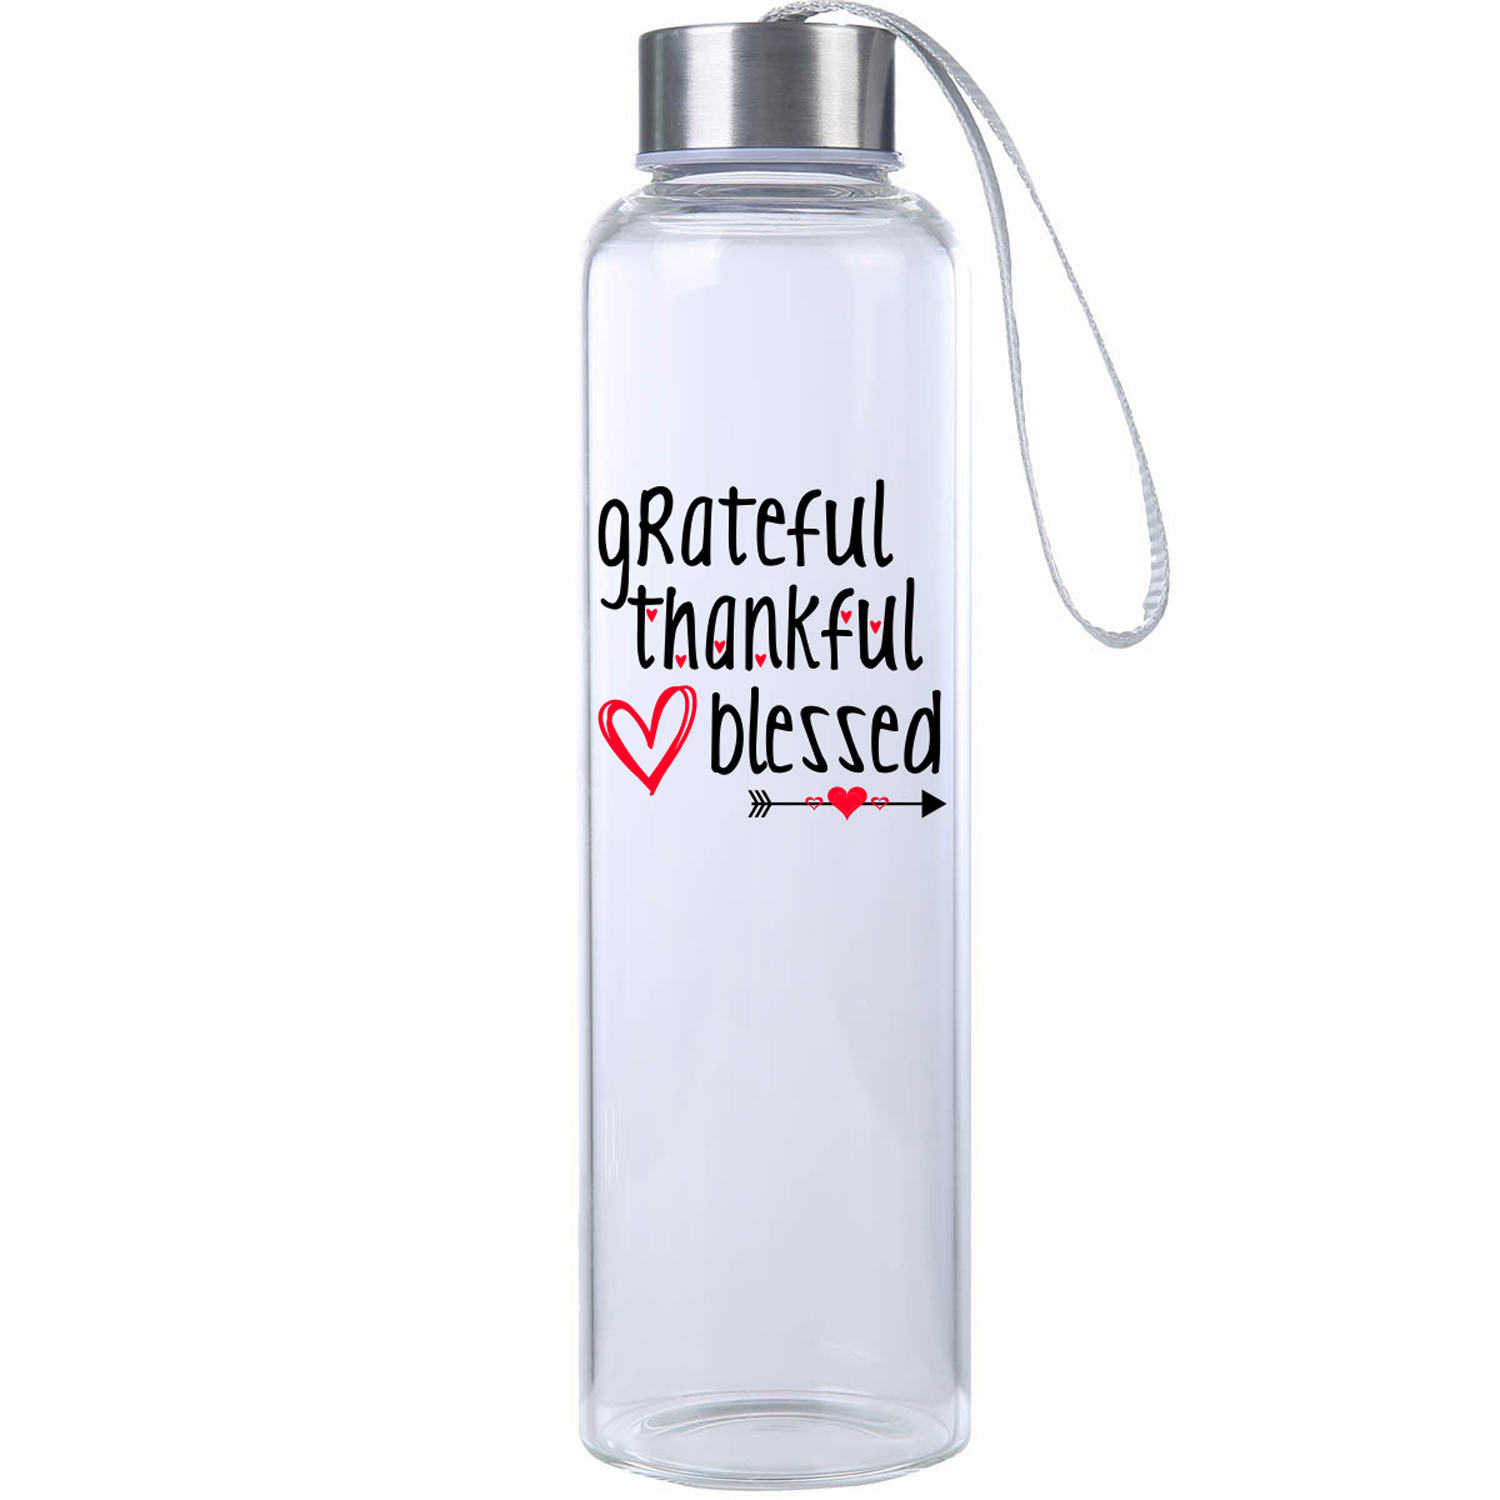 Grateful Thankful Blessed Glass Water Bottle